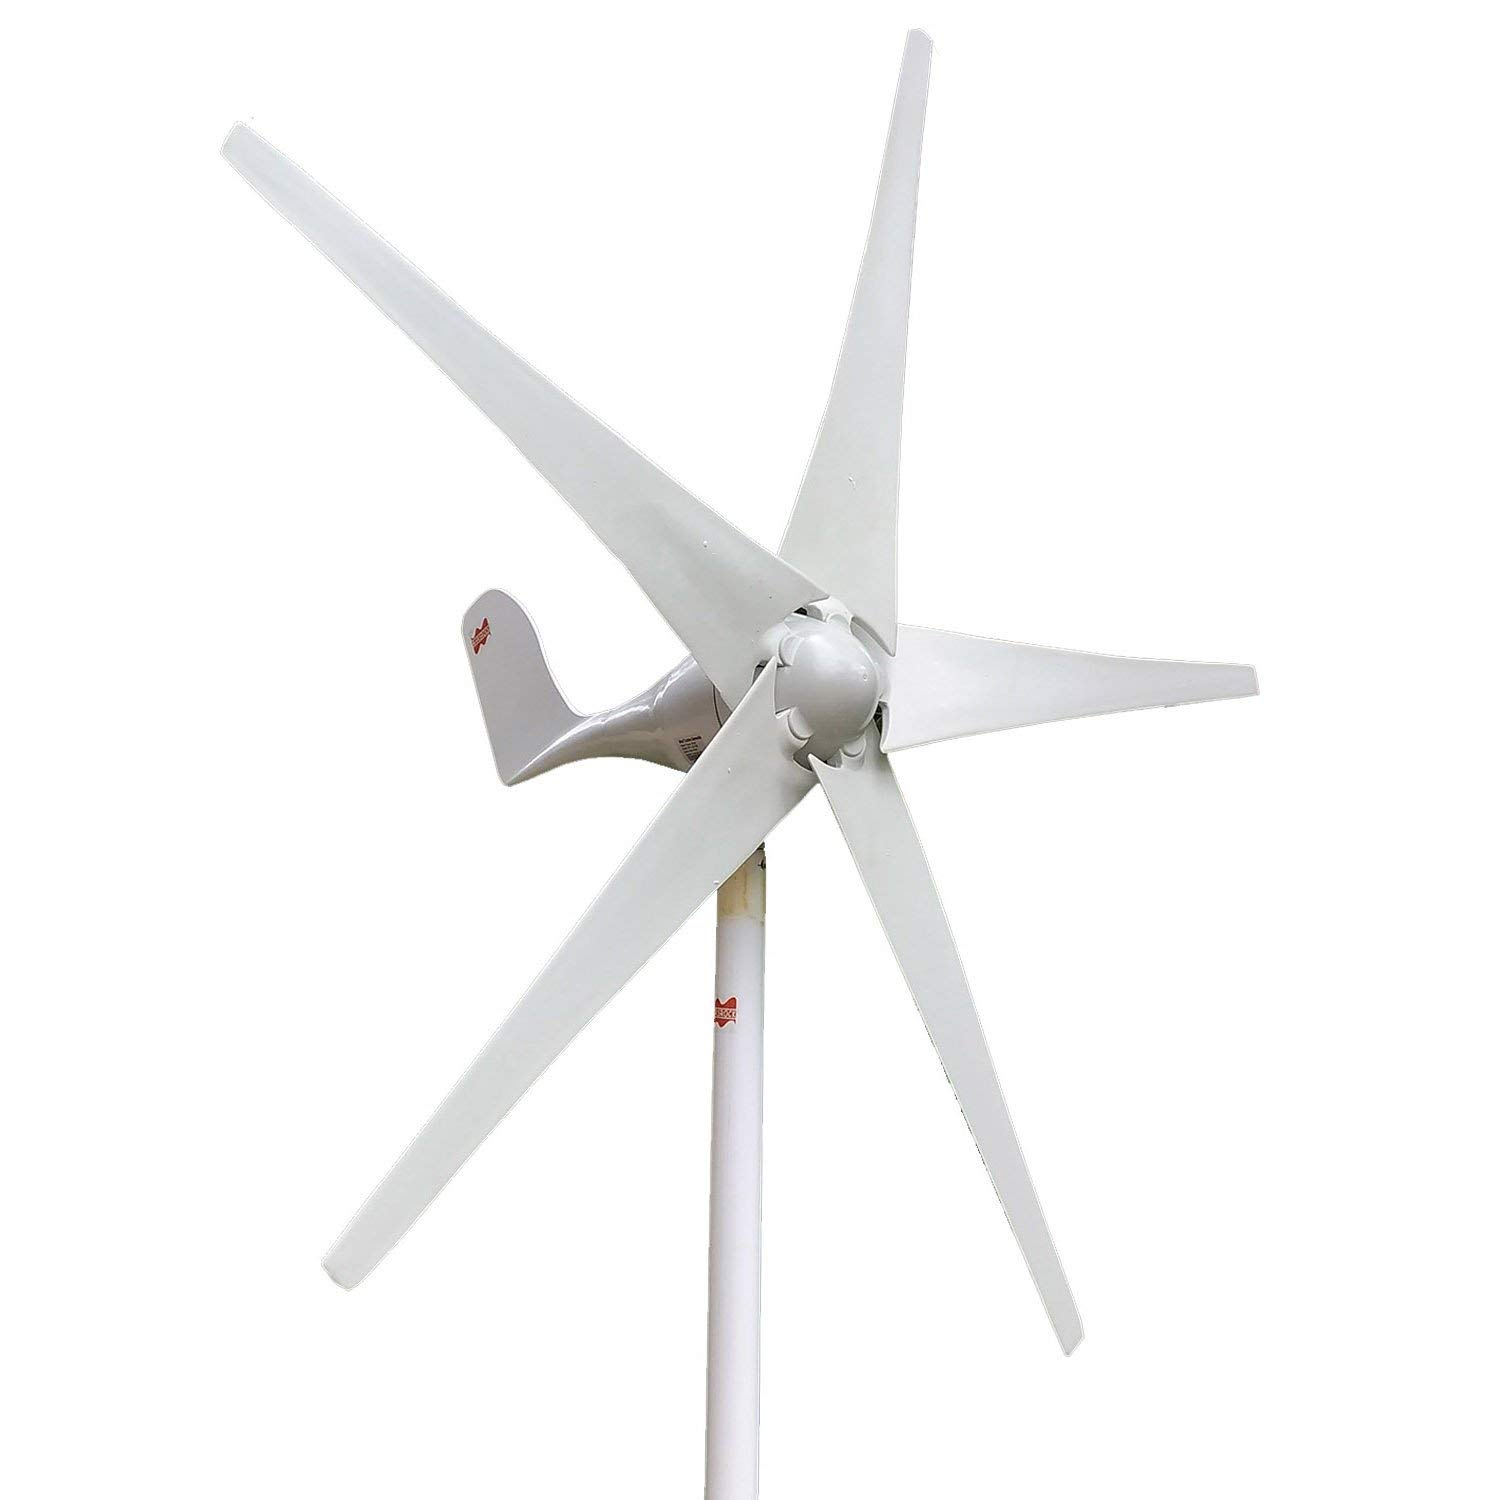 MarsRock Wind Turbine Generator Economy 2m/s Low Star-up Wind Speed 100W 200W 300W 400W Windmill AC 12V or 24V 5 Blades(300Watt 12volt)